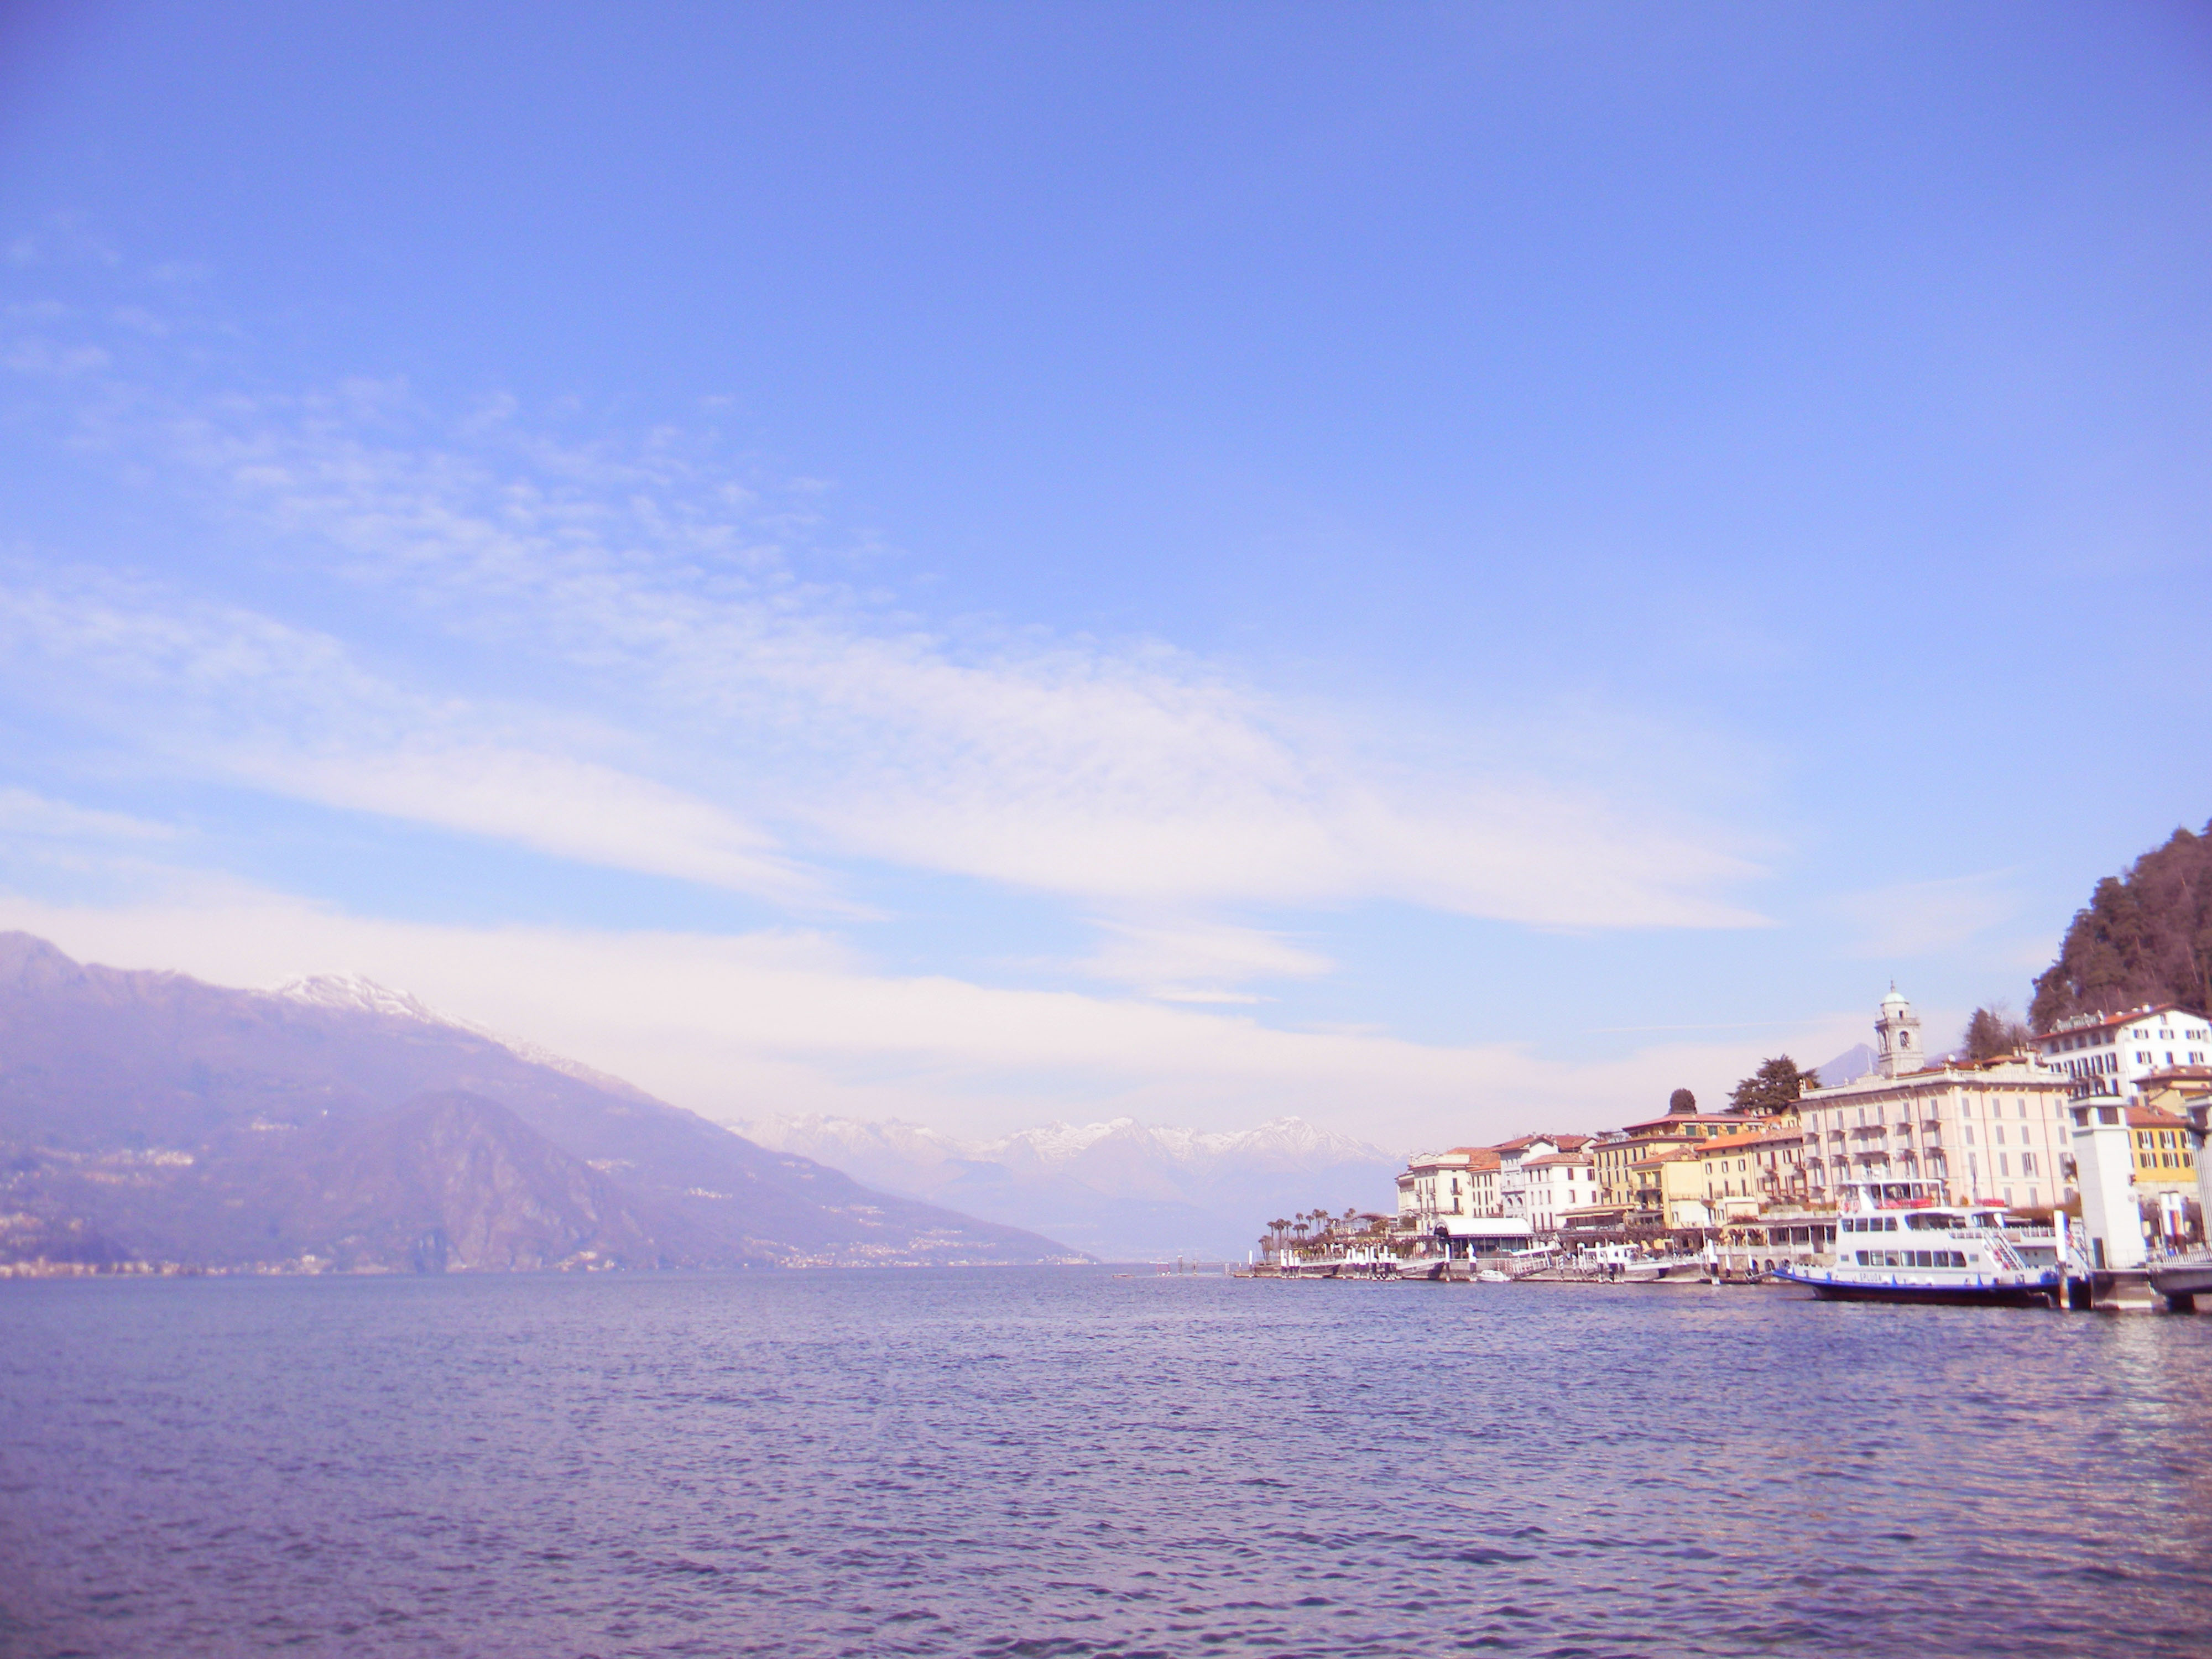 View of Bellagio from Lake Como